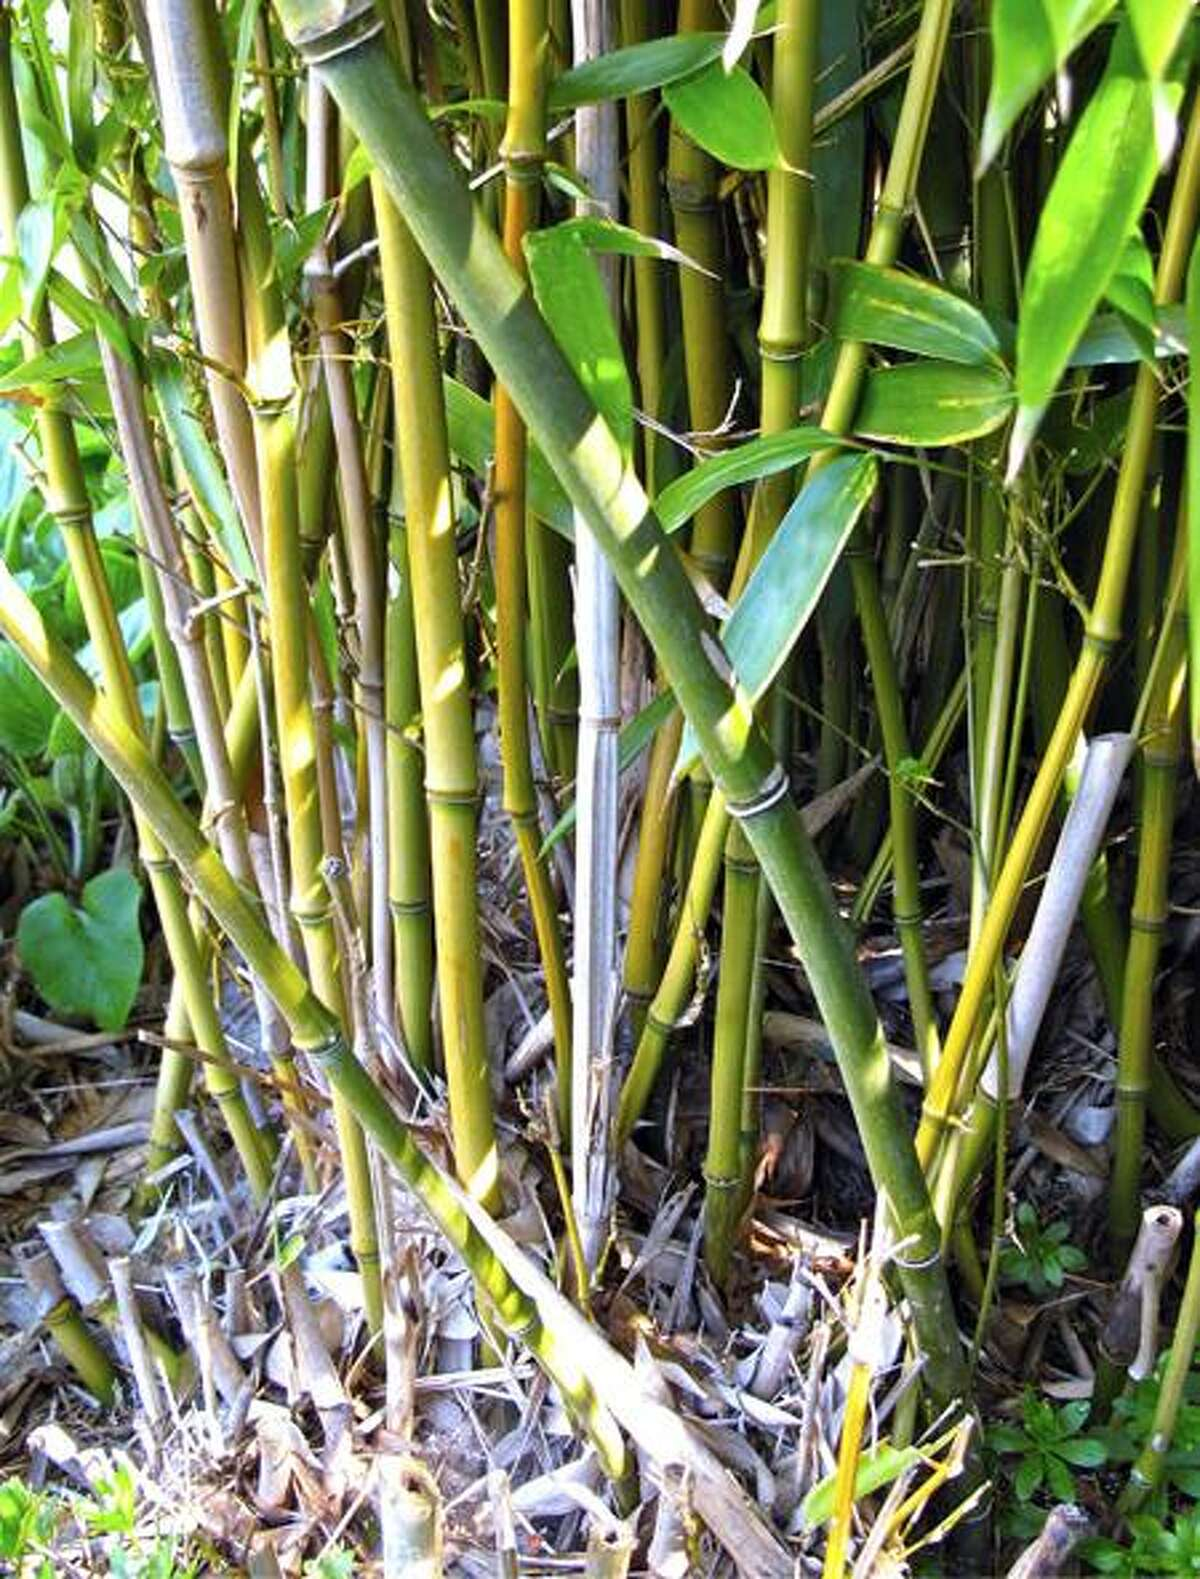 This April 26, 2011 photo shows bamboo in Langley, Wash. Bamboo is one of the fastest-growing plants in nature. One of the most useful, too. ItÕs hollow stems are incredibly strong and can be used for everything from fencing to trellises. (AP Photo/Dean Fosdick)